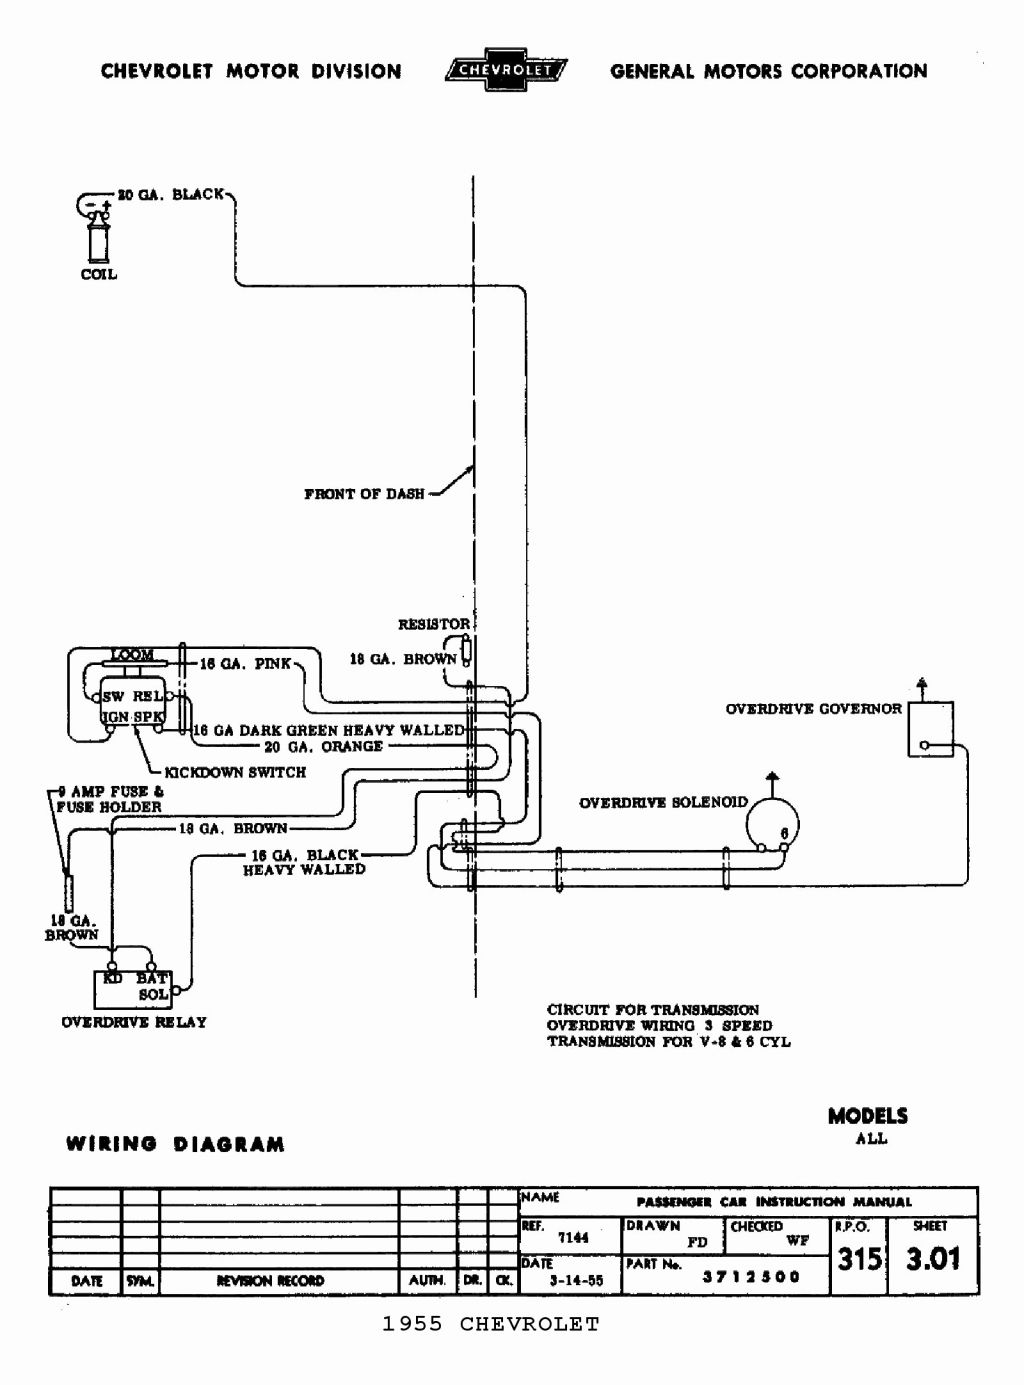 1955 chevy turn signal wiring diagram Download-Size of Wiring Diagram Turn Signal Wiring Diagram Elegant 1955 Chevrolet Wiring Diagram Wiring 16-o